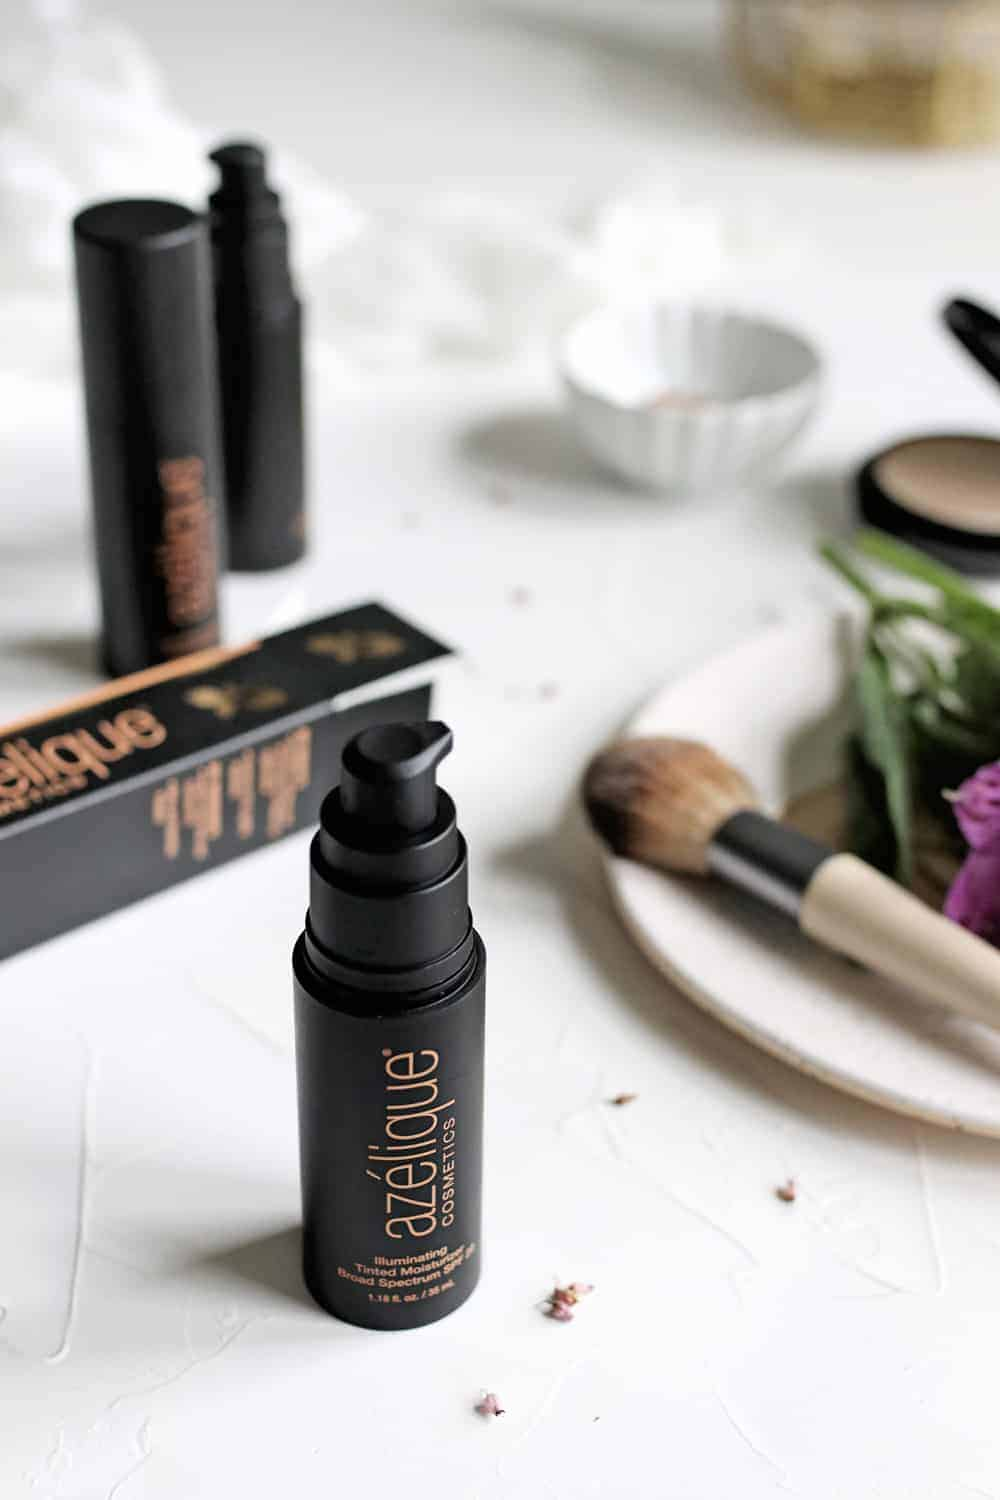 5 Reasons to Make the Switch to Natural Makeup